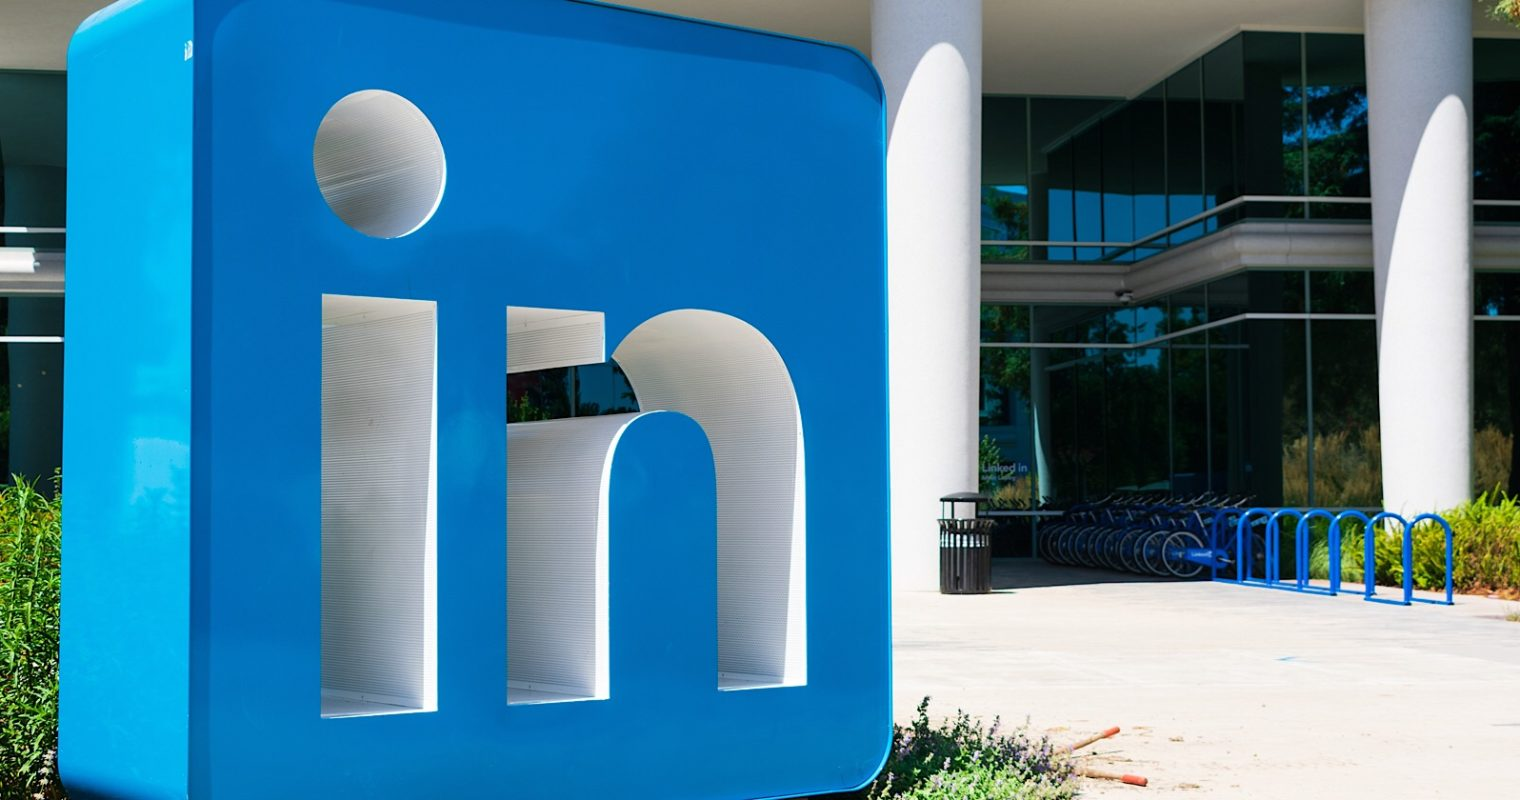 LinkedIn Now Has a Way for Users to Verify Their Skills